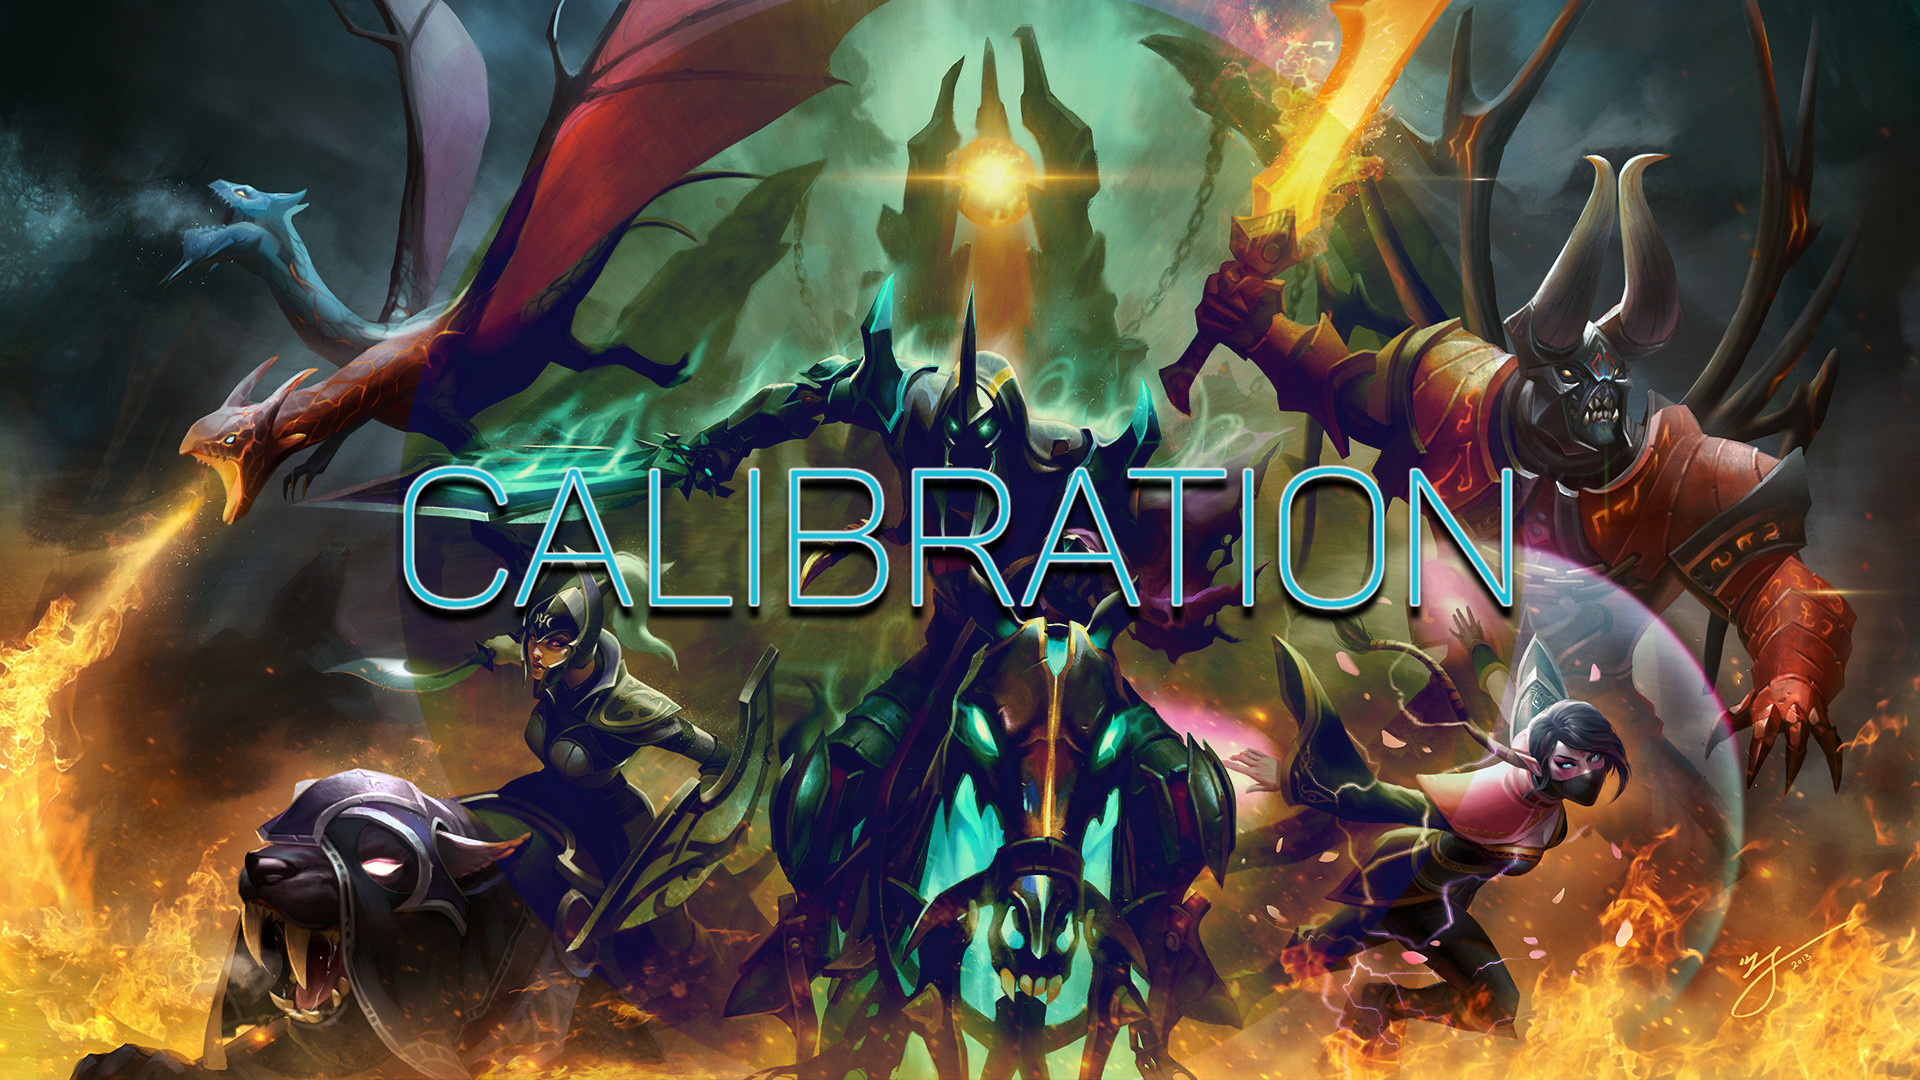 CALIBRATION GAMES ThisIsHarley - e2p.com